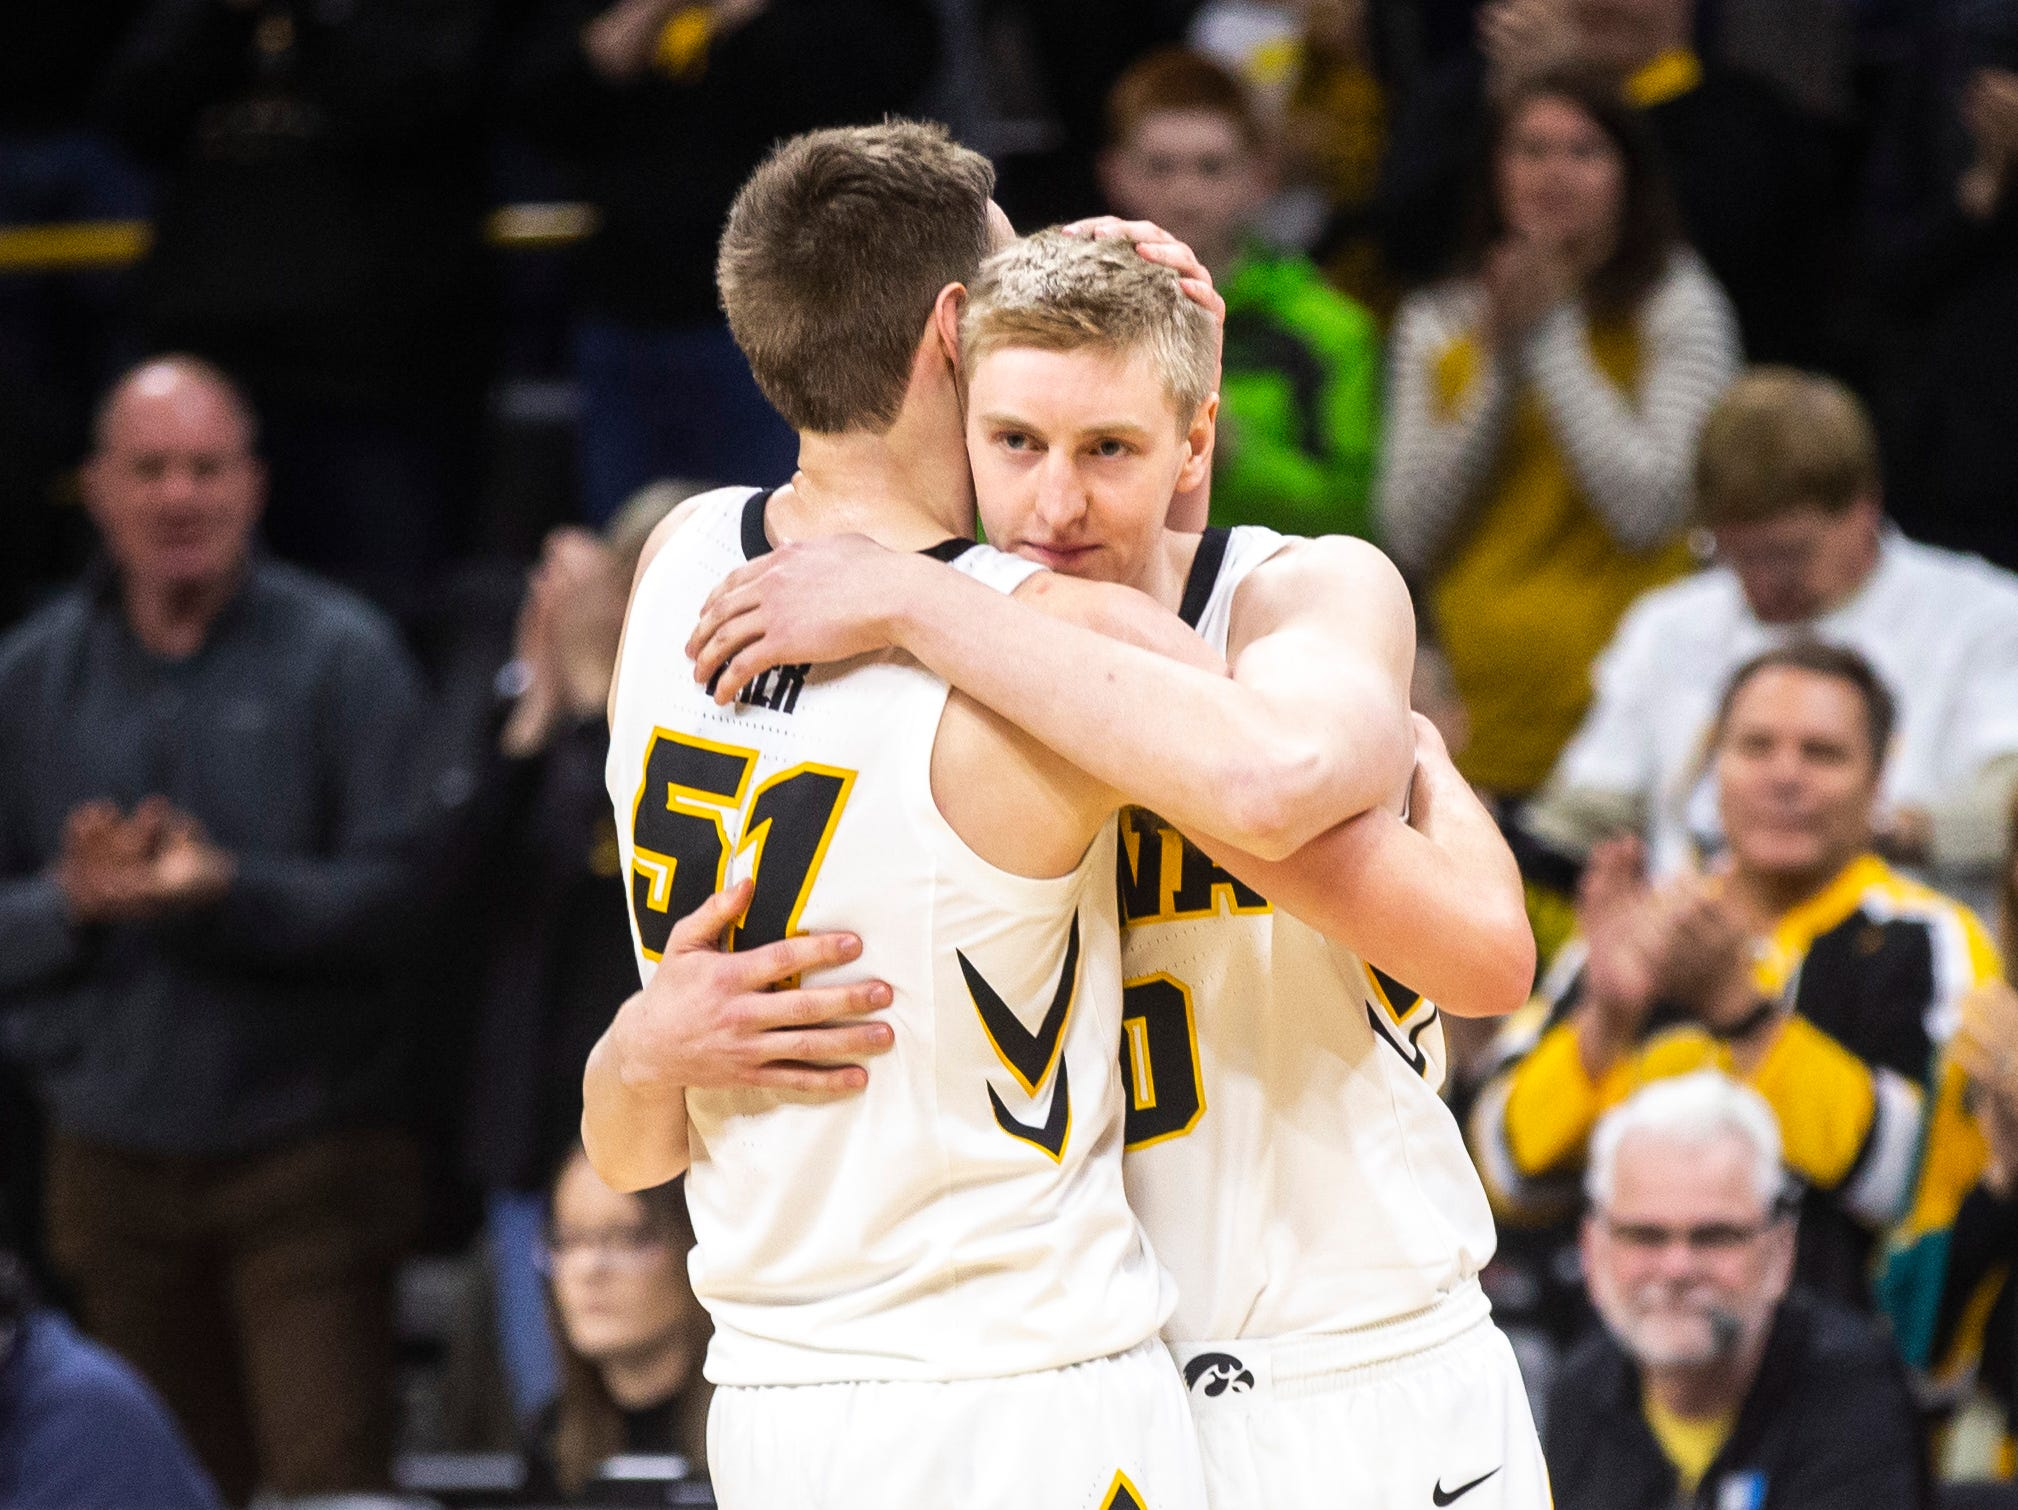 Iowa forward Nicholas Baer (51) embraces his brother, Iowa forward Michael Baer (0) during a NCAA Big Ten Conference men's basketball game on Saturday, March 2, 2019, at Carver-Hawkeye Arena in Iowa City, Iowa.